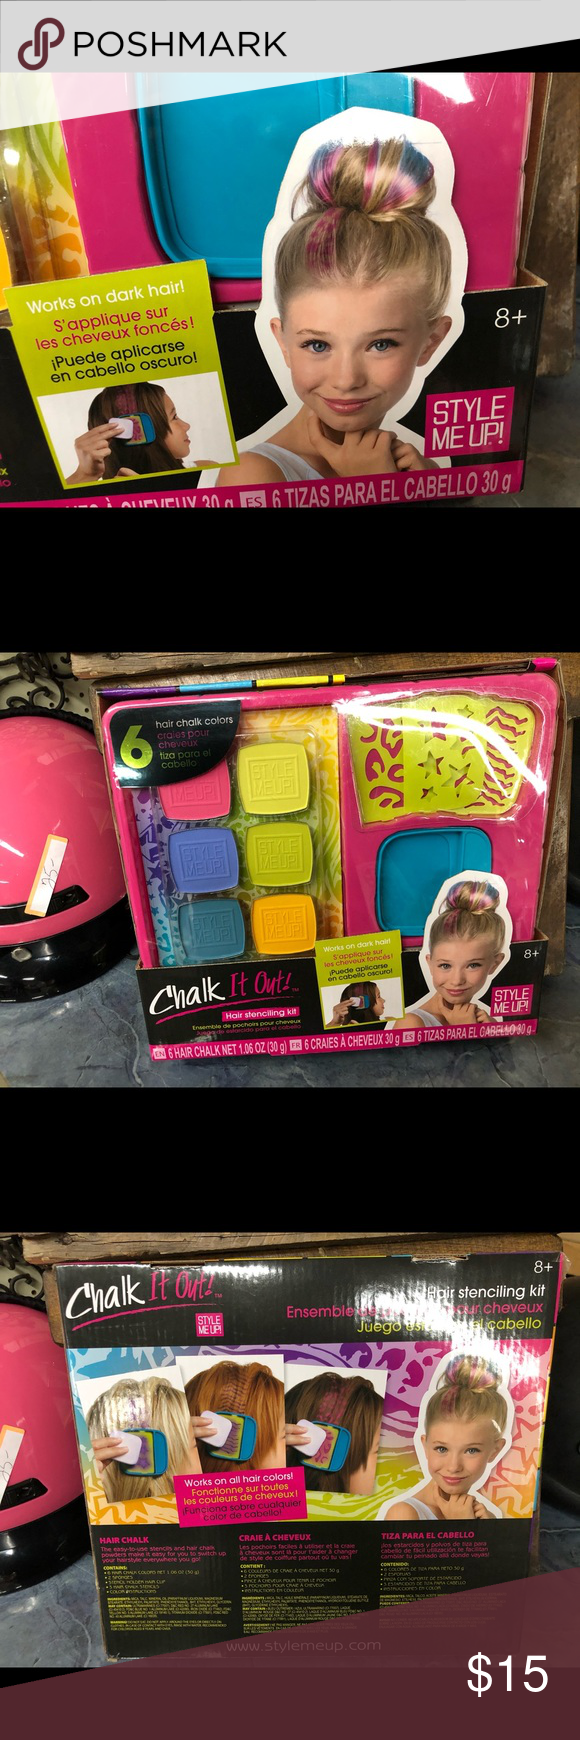 Chalk It Out Hair Chalk Colors Nwt Hair Chalk Hair Stenciling Chalk Colored Hair